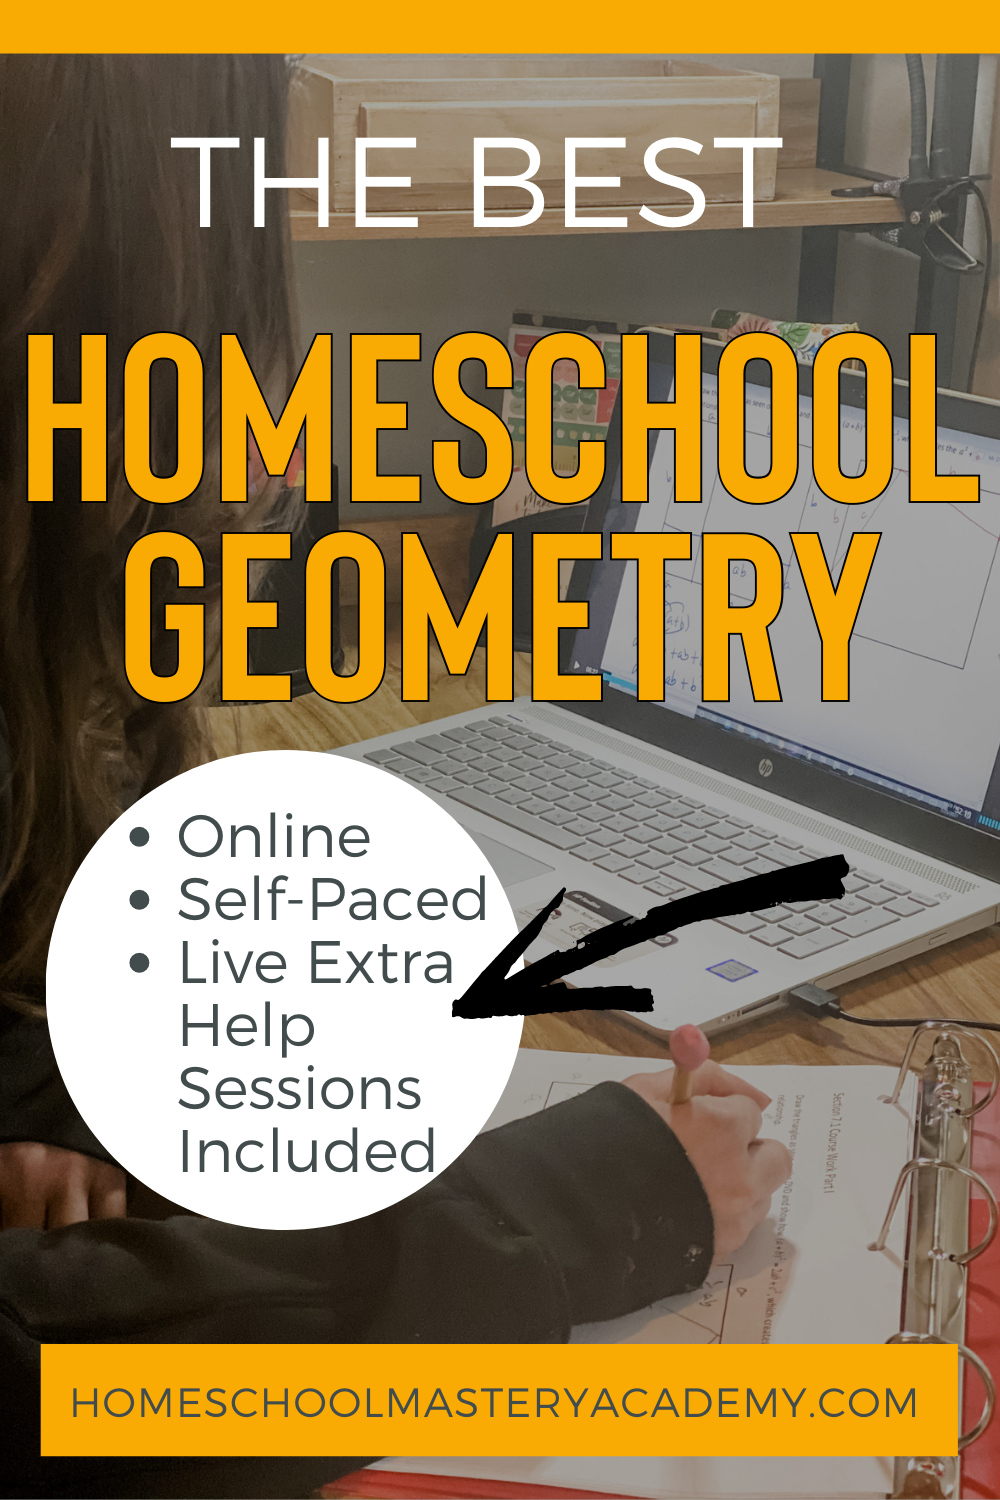 If teaching homeschool geometry has you freaking out just a little, you are not alone. We have the best option for high school math! #homeschoolgeometry #homeschoolmathcurriculum #onlinemathcurriculum #highschoolmath